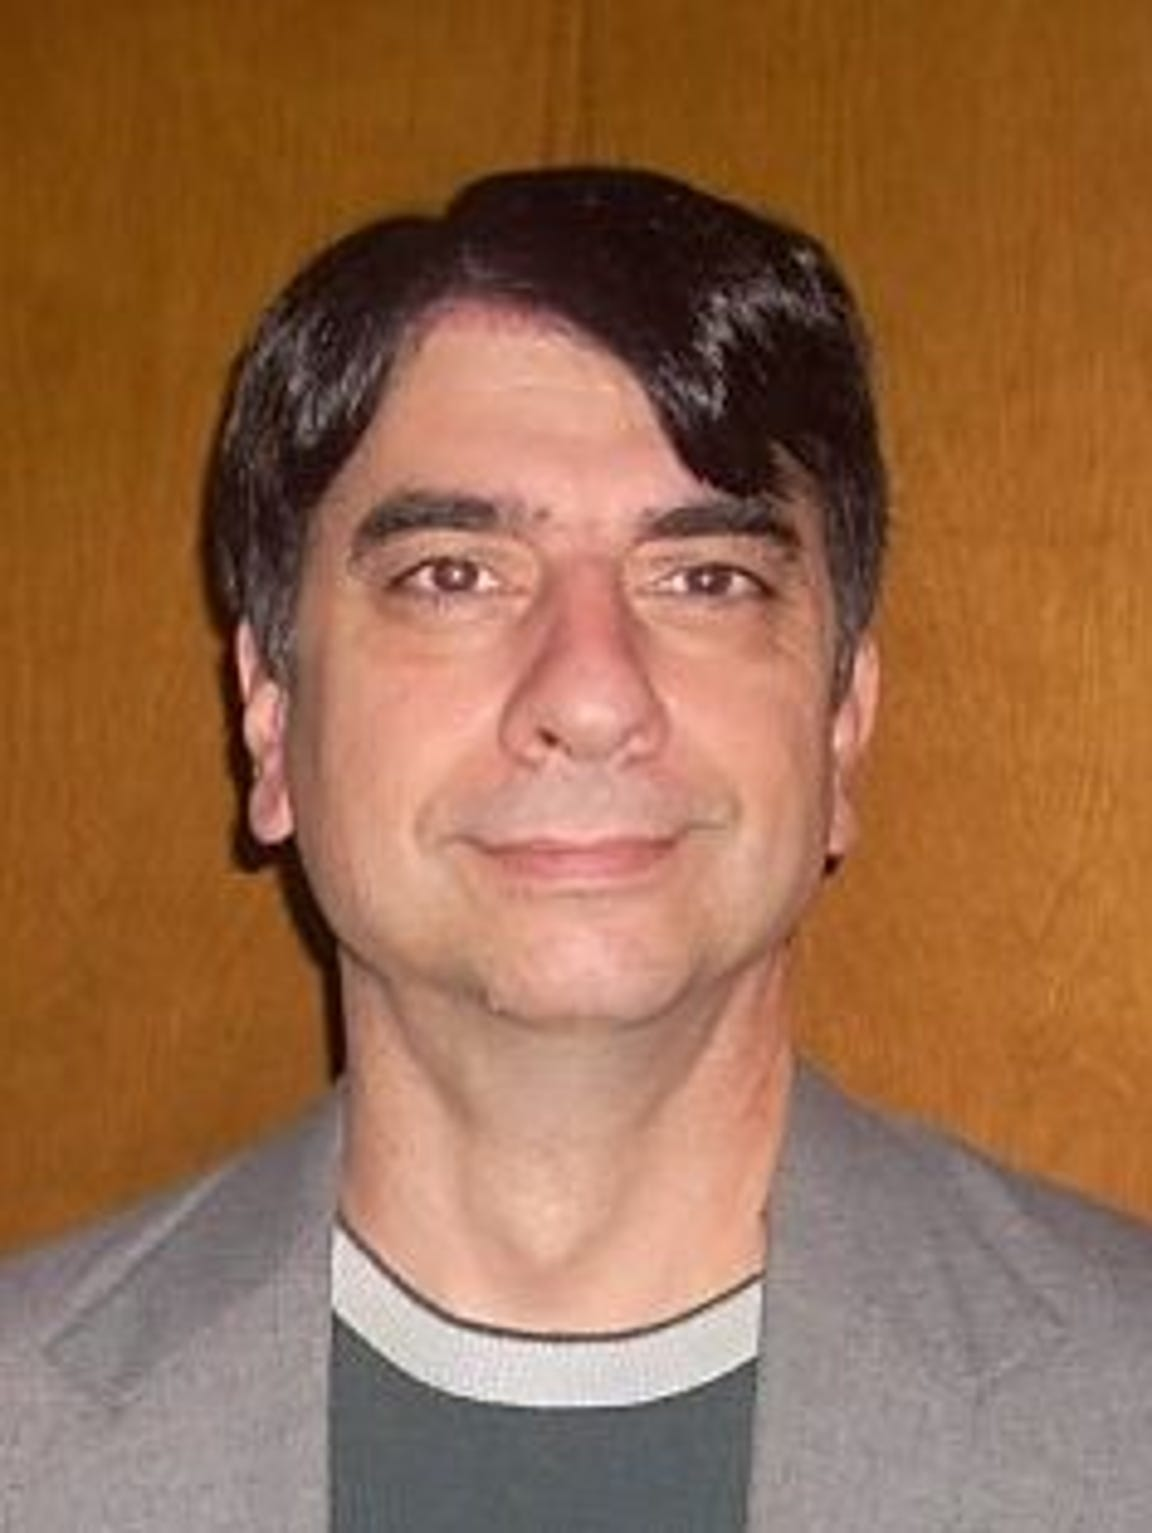 Phil Pavona is the vice president of the local chapter